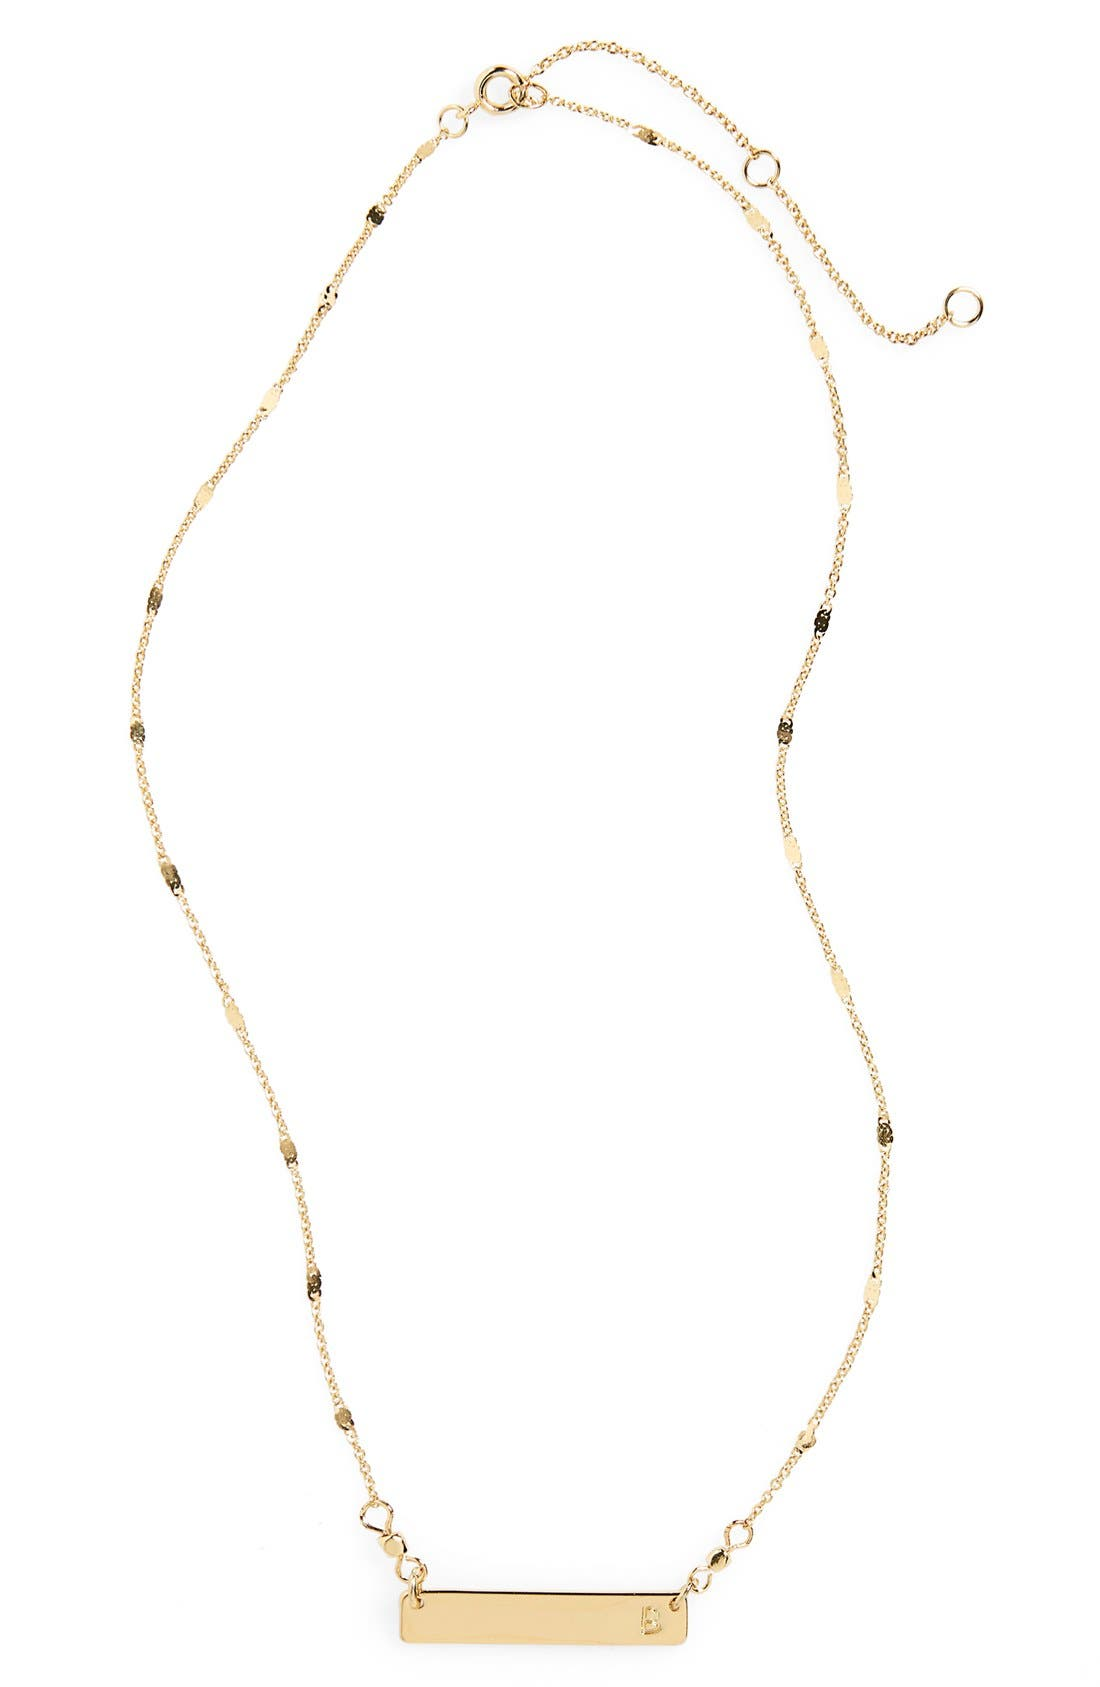 Main Image - Stephan & Co. Initial Bar Necklace